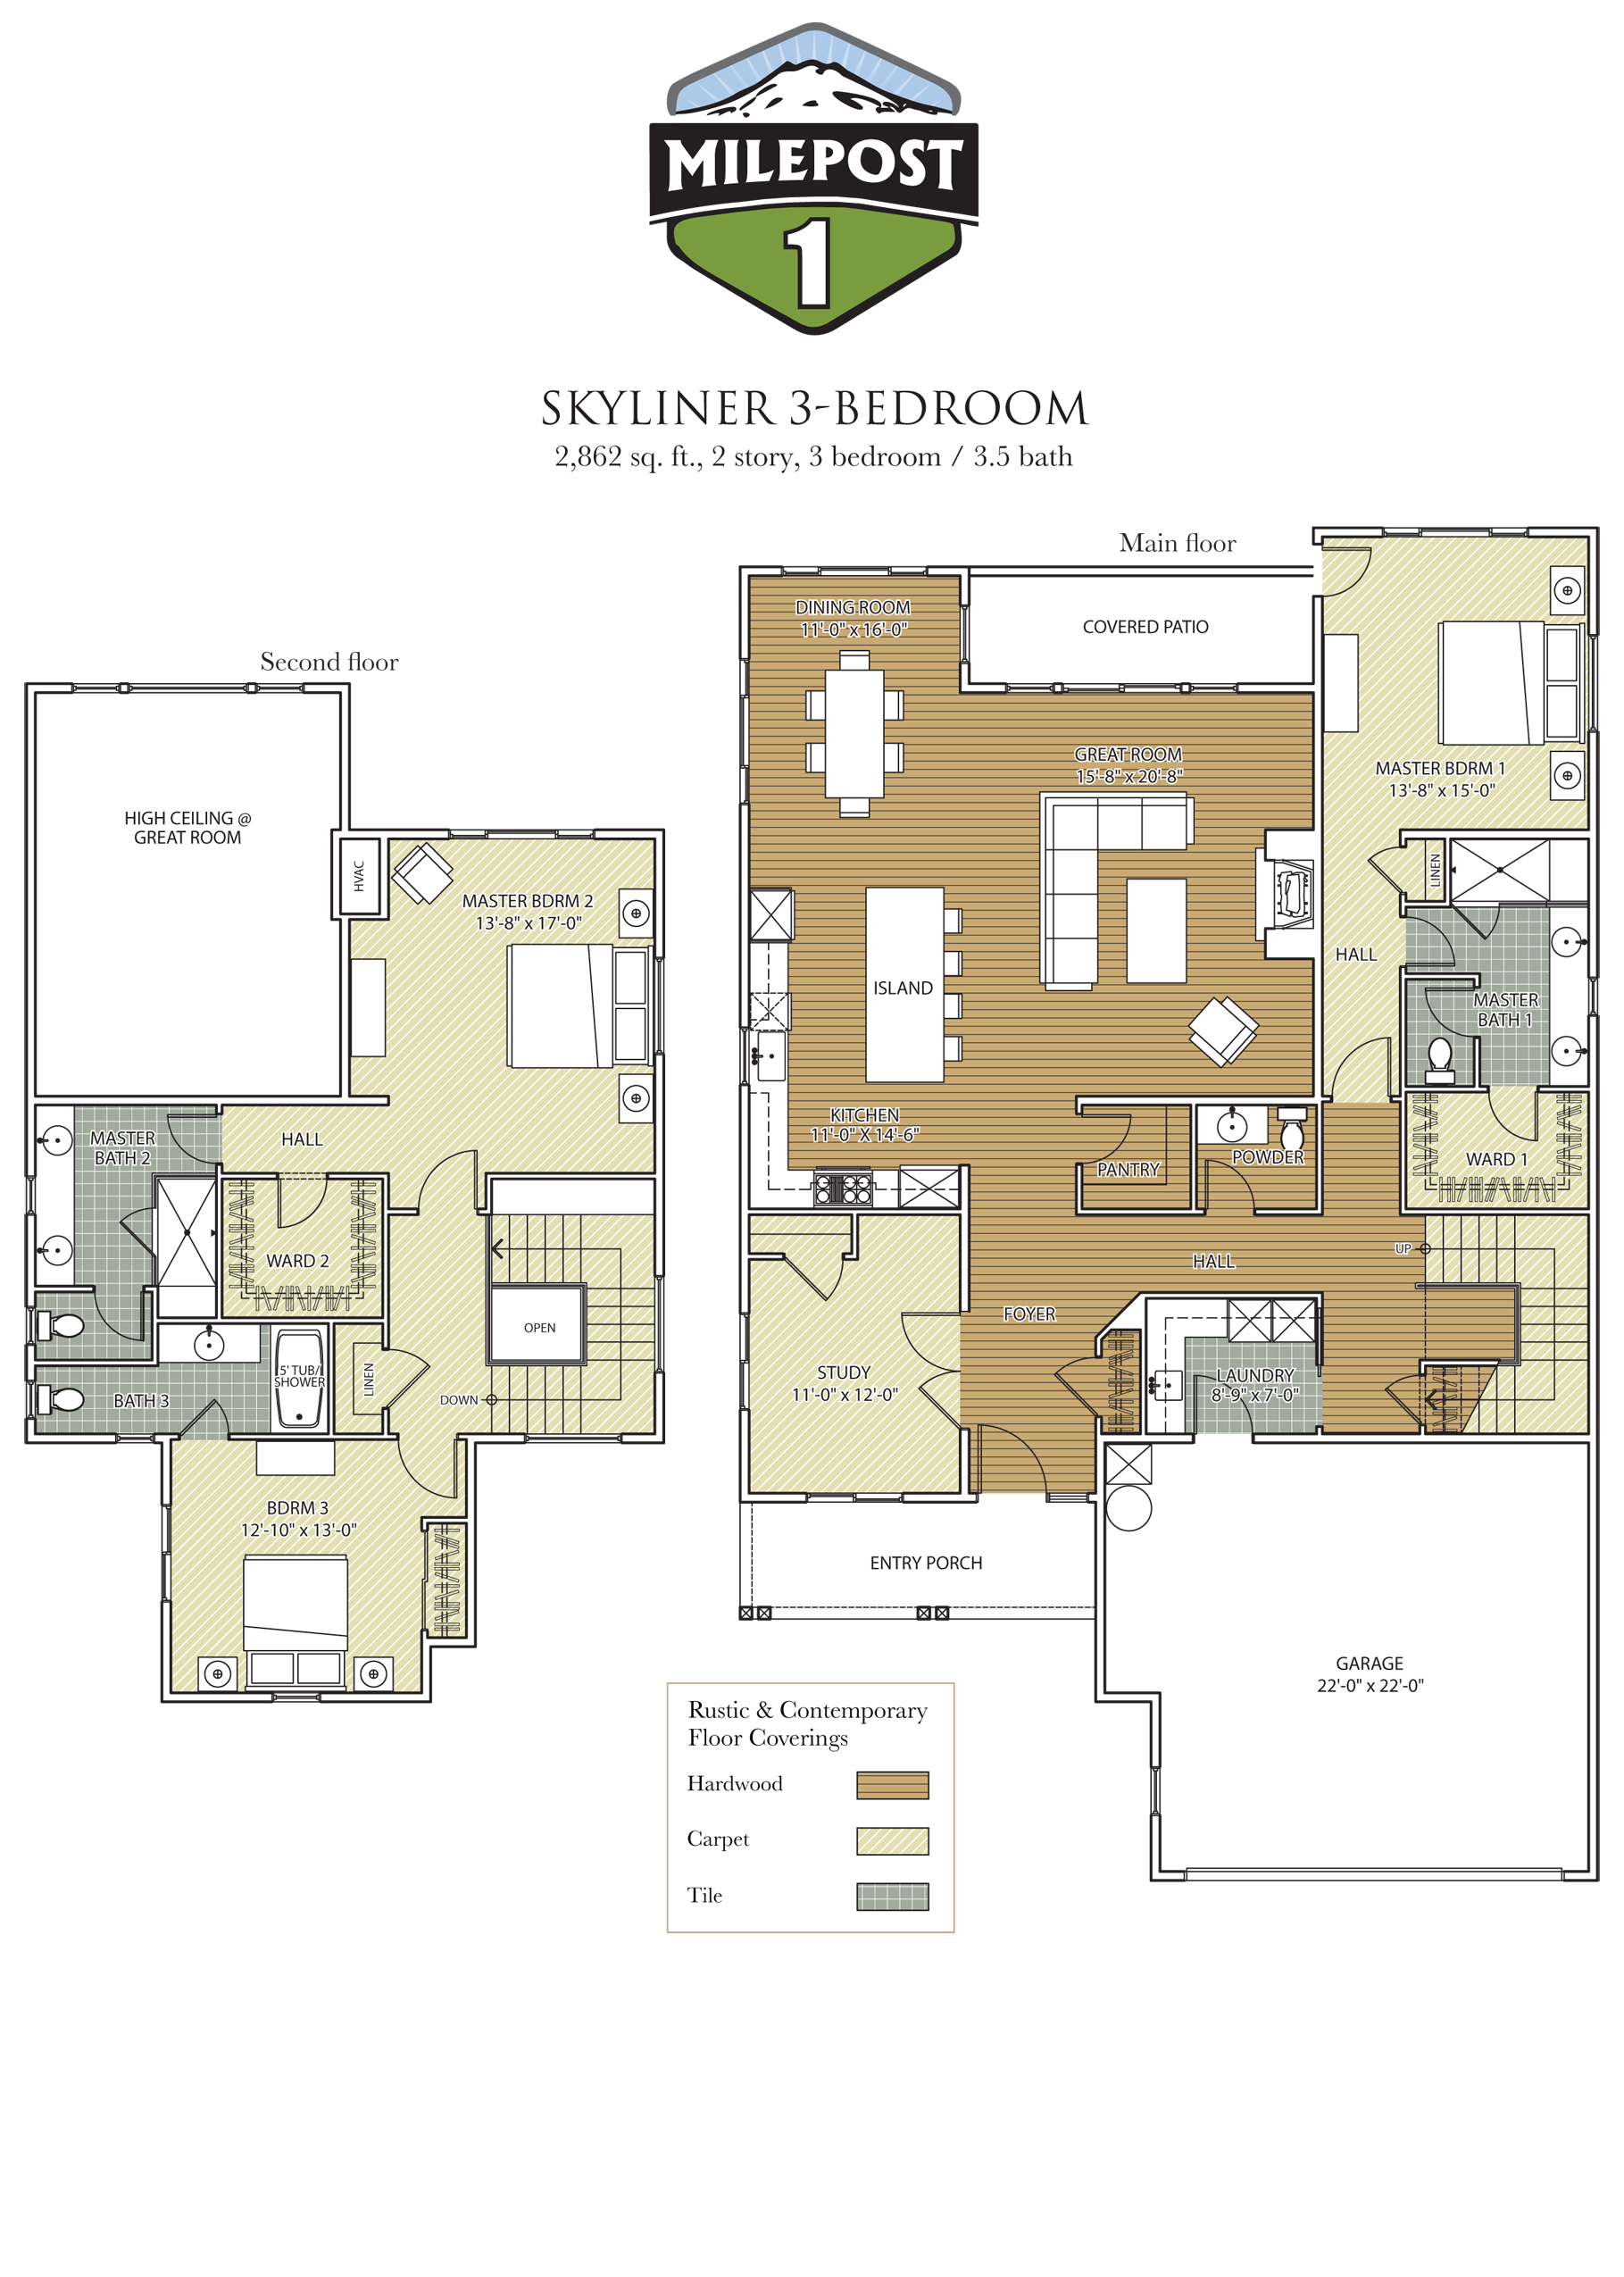 Milepost 1 Skyliner 3-Bedroom floor plan 6_29_17